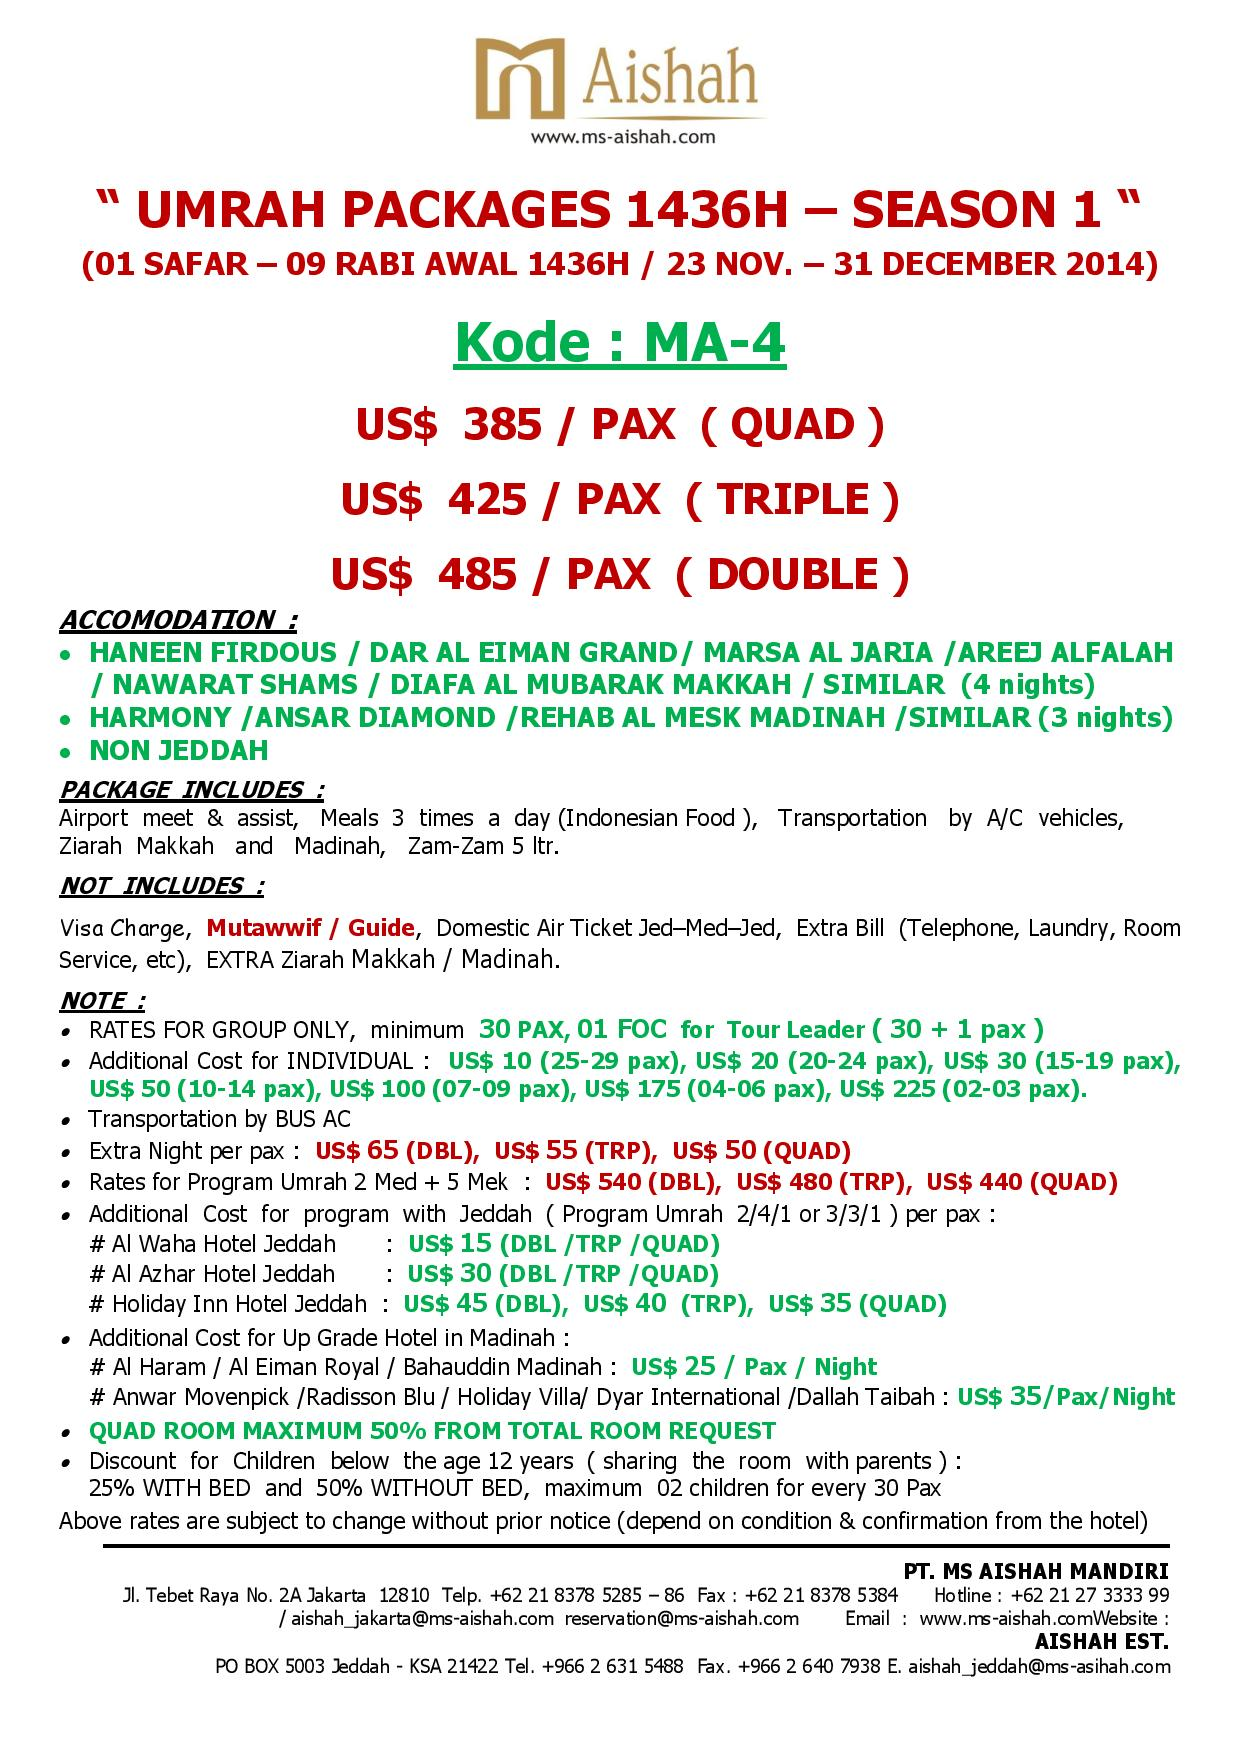 SPECIAL OFFER UMRAH 1436H SEASON 1 - 23 NOVEMBER - 31 DECEMBER 2014 -ma 4